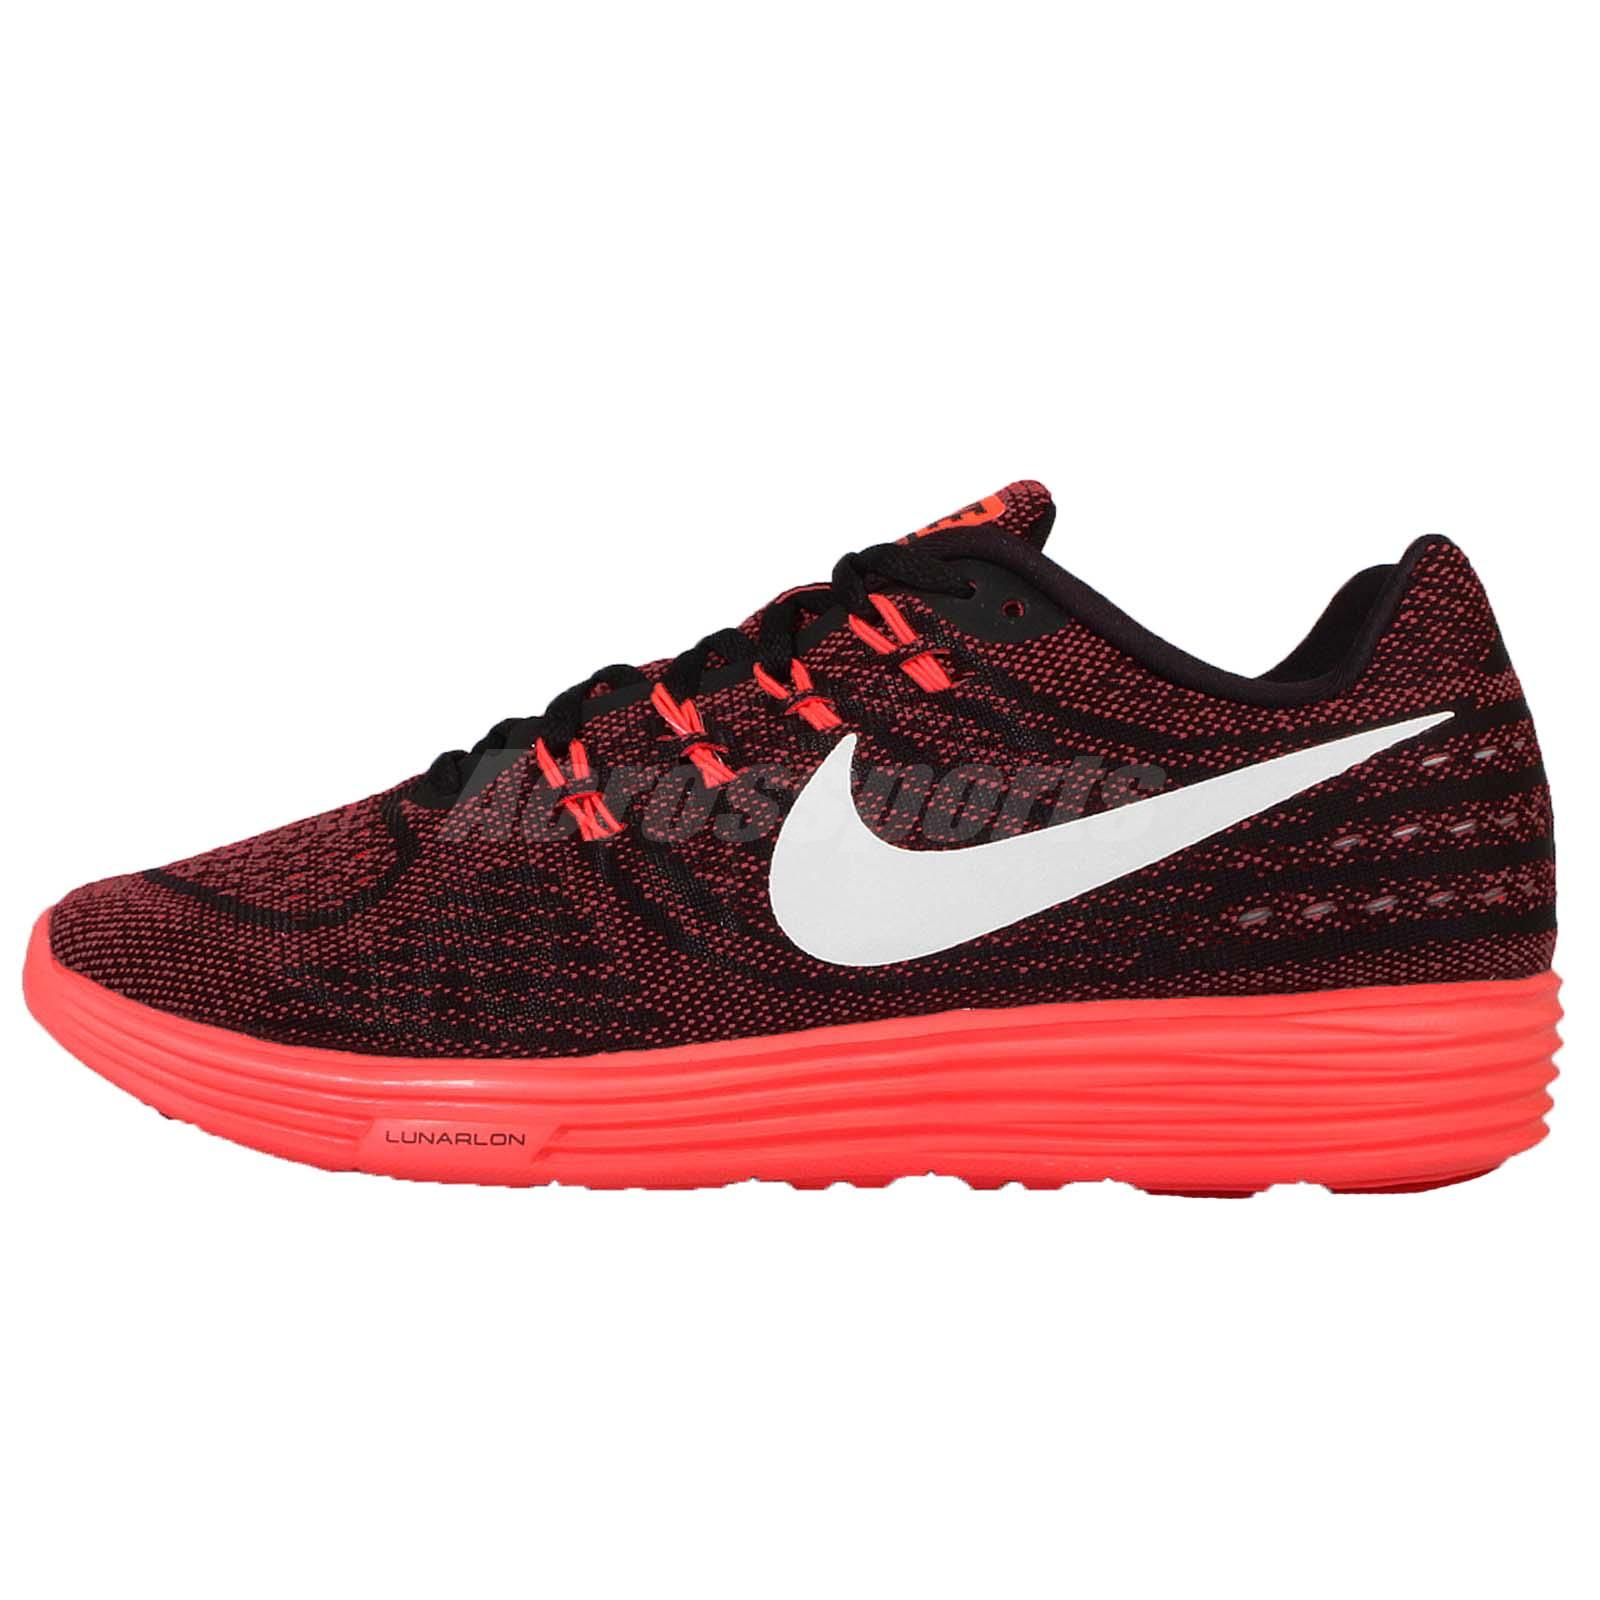 Nike Lunartempo 2 II Red Black Mens Running Shoes Sneakers ...